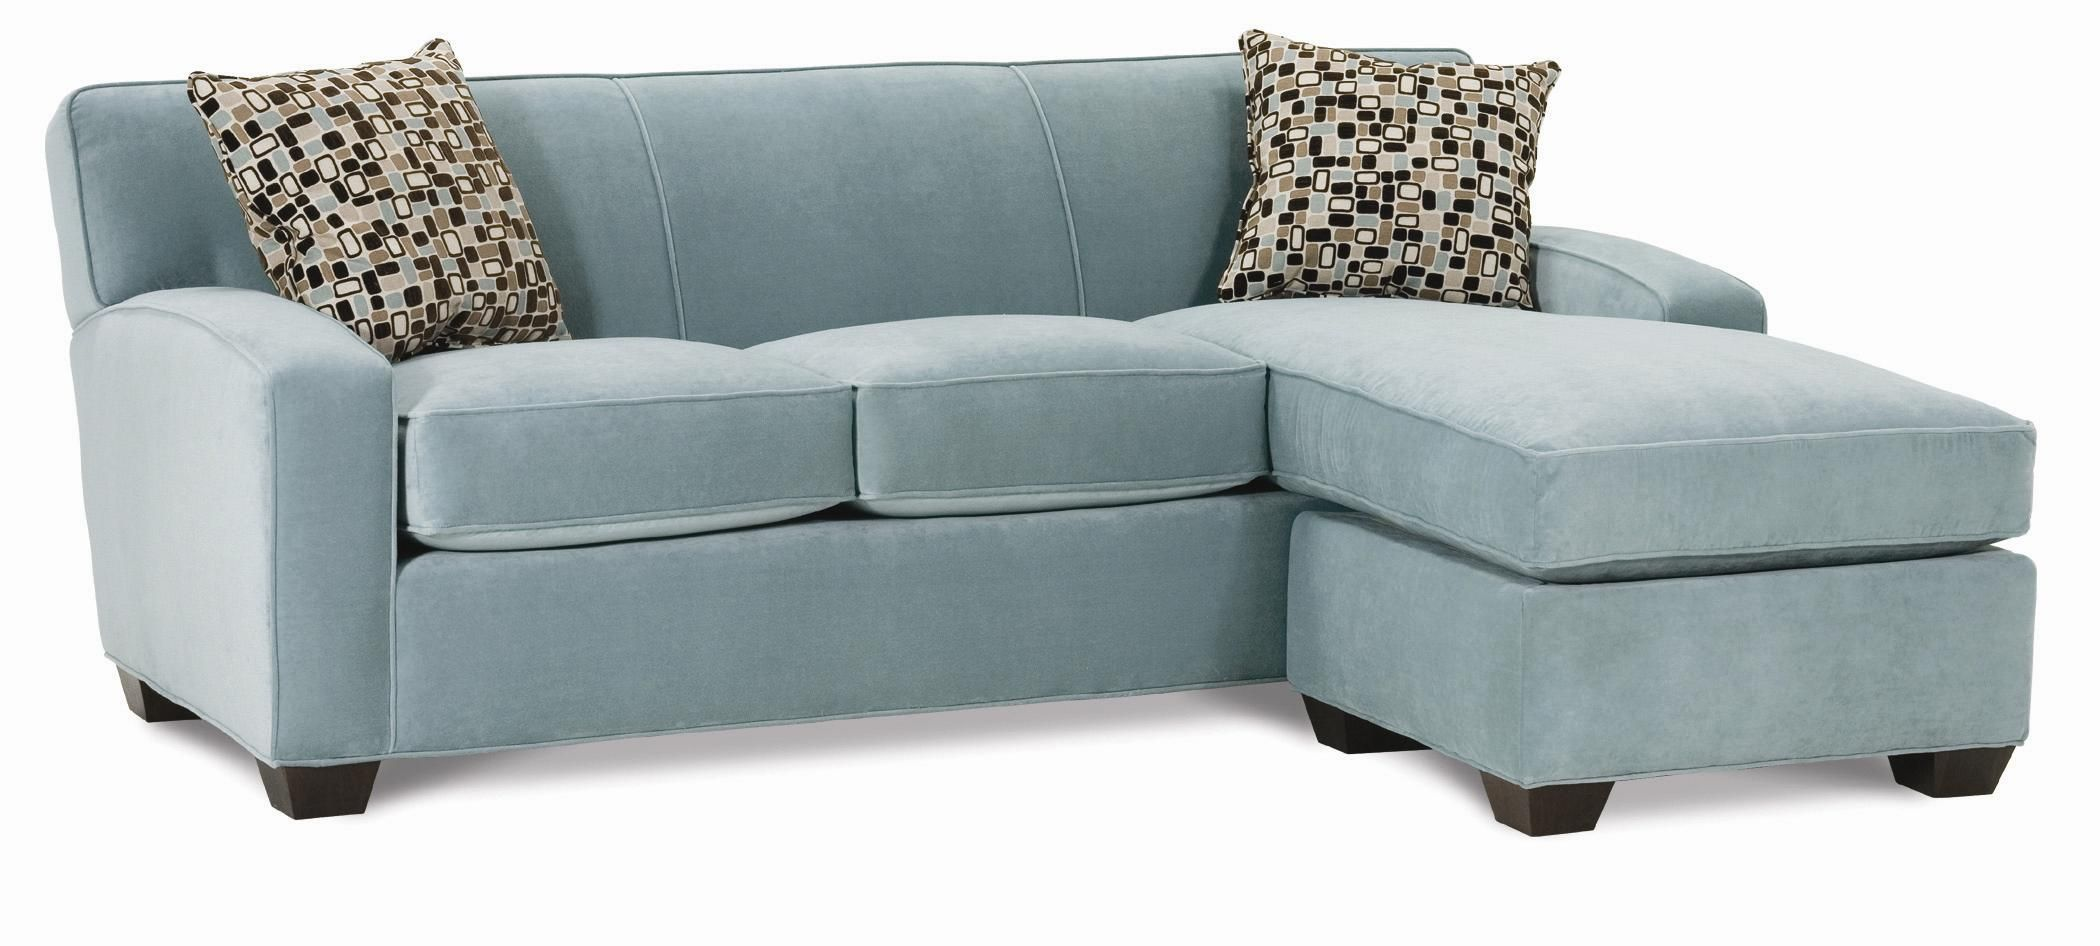 Horizon Stationary Sectional Sofa with Chaise by Rowe AHFA